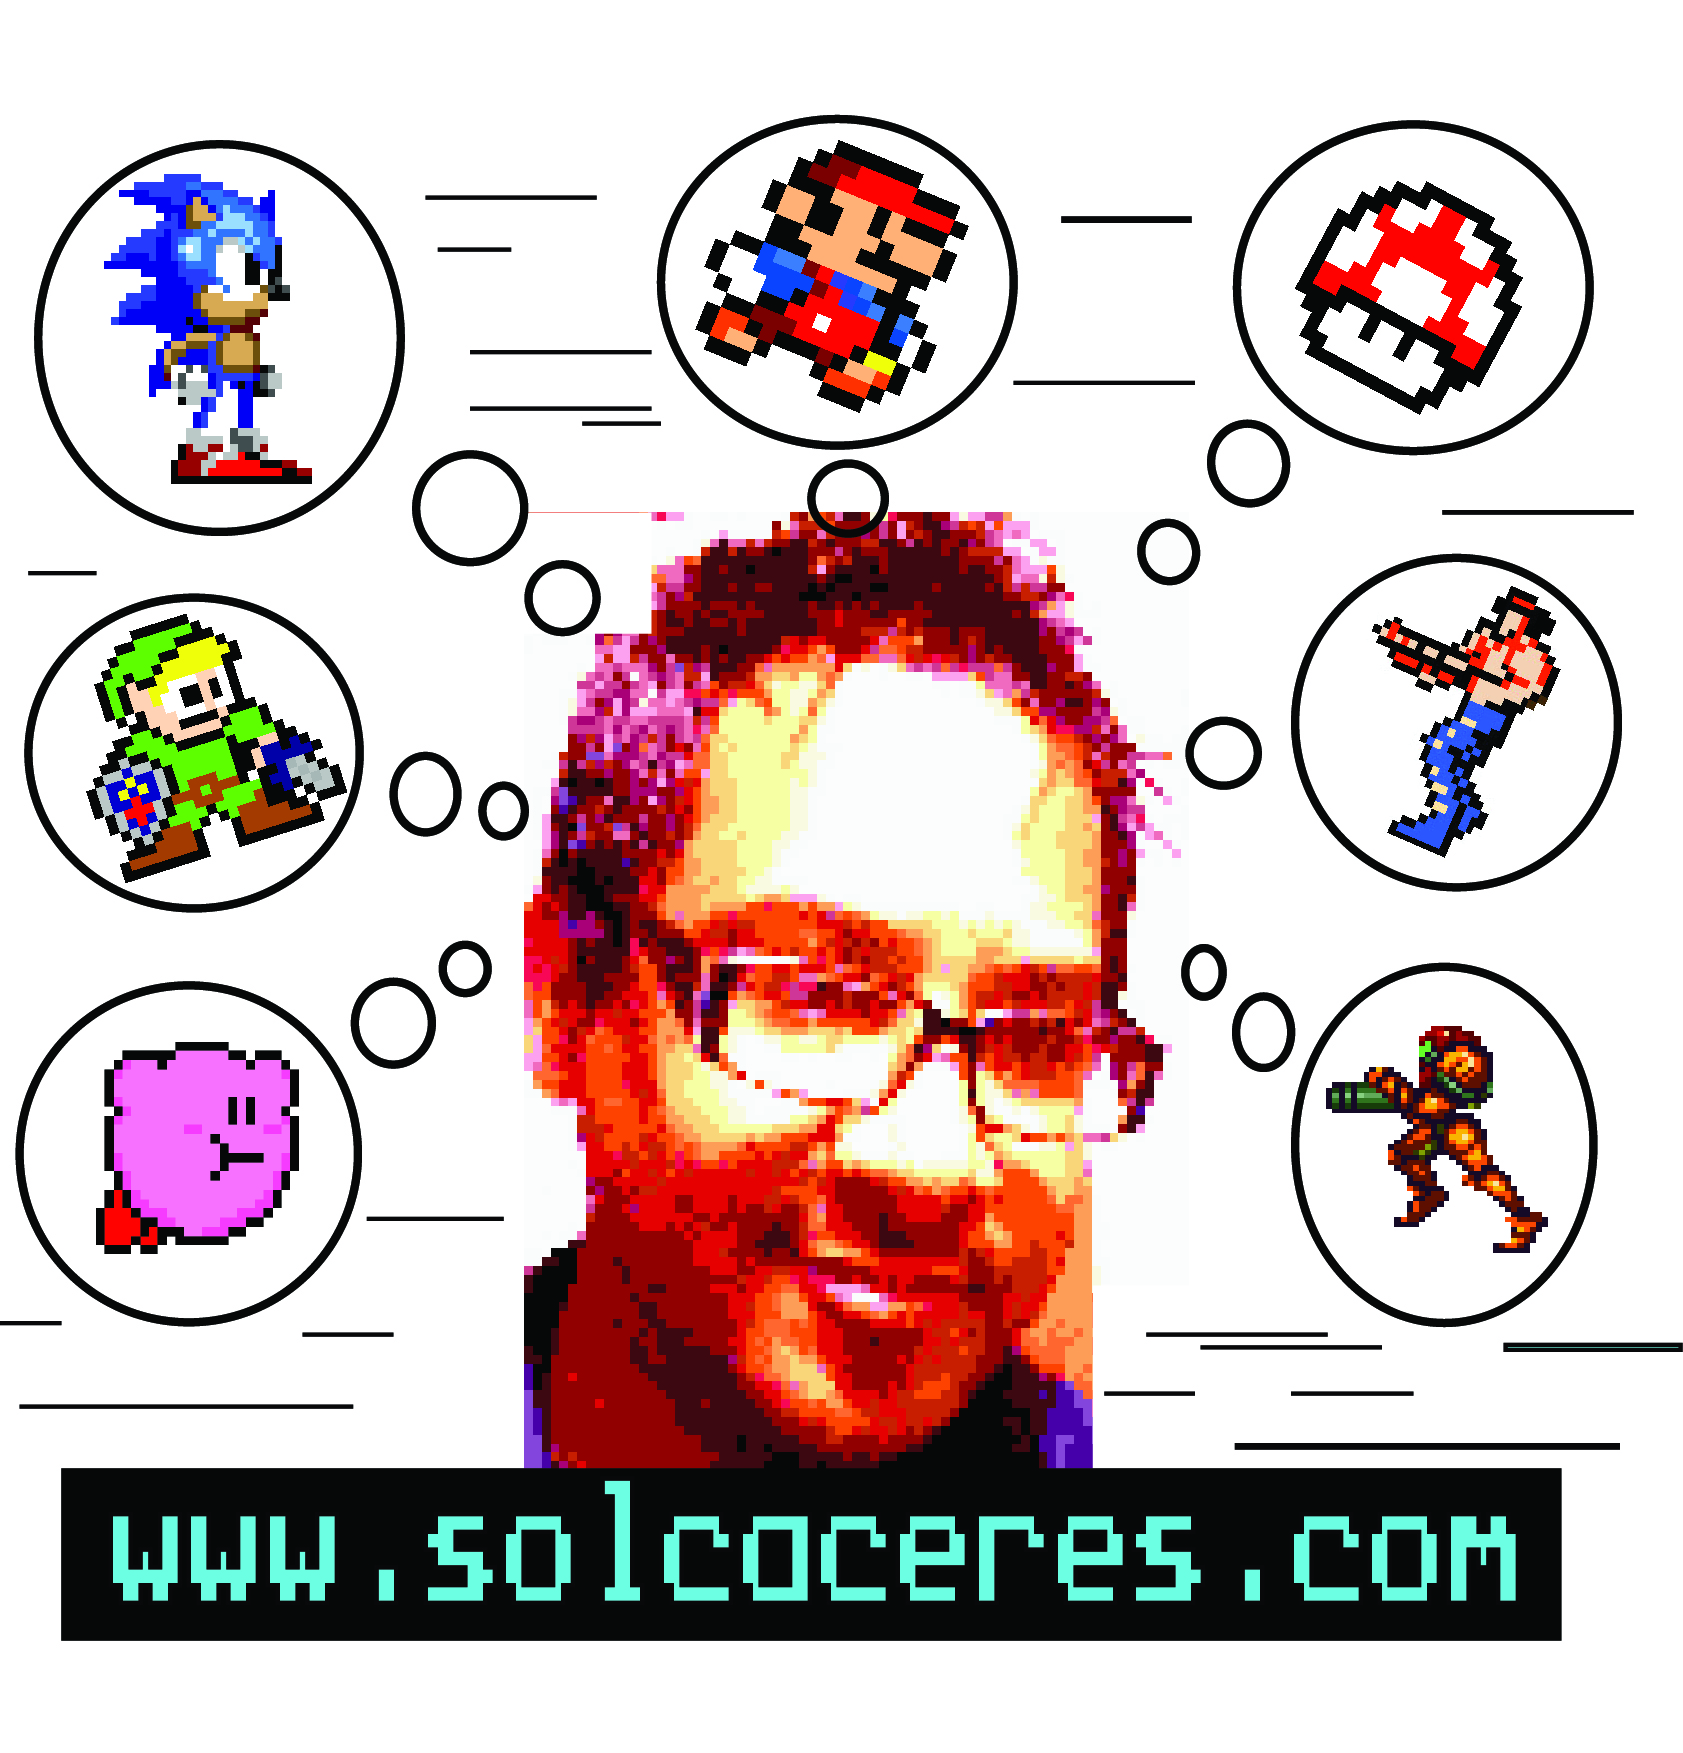 www.solcaceres.com